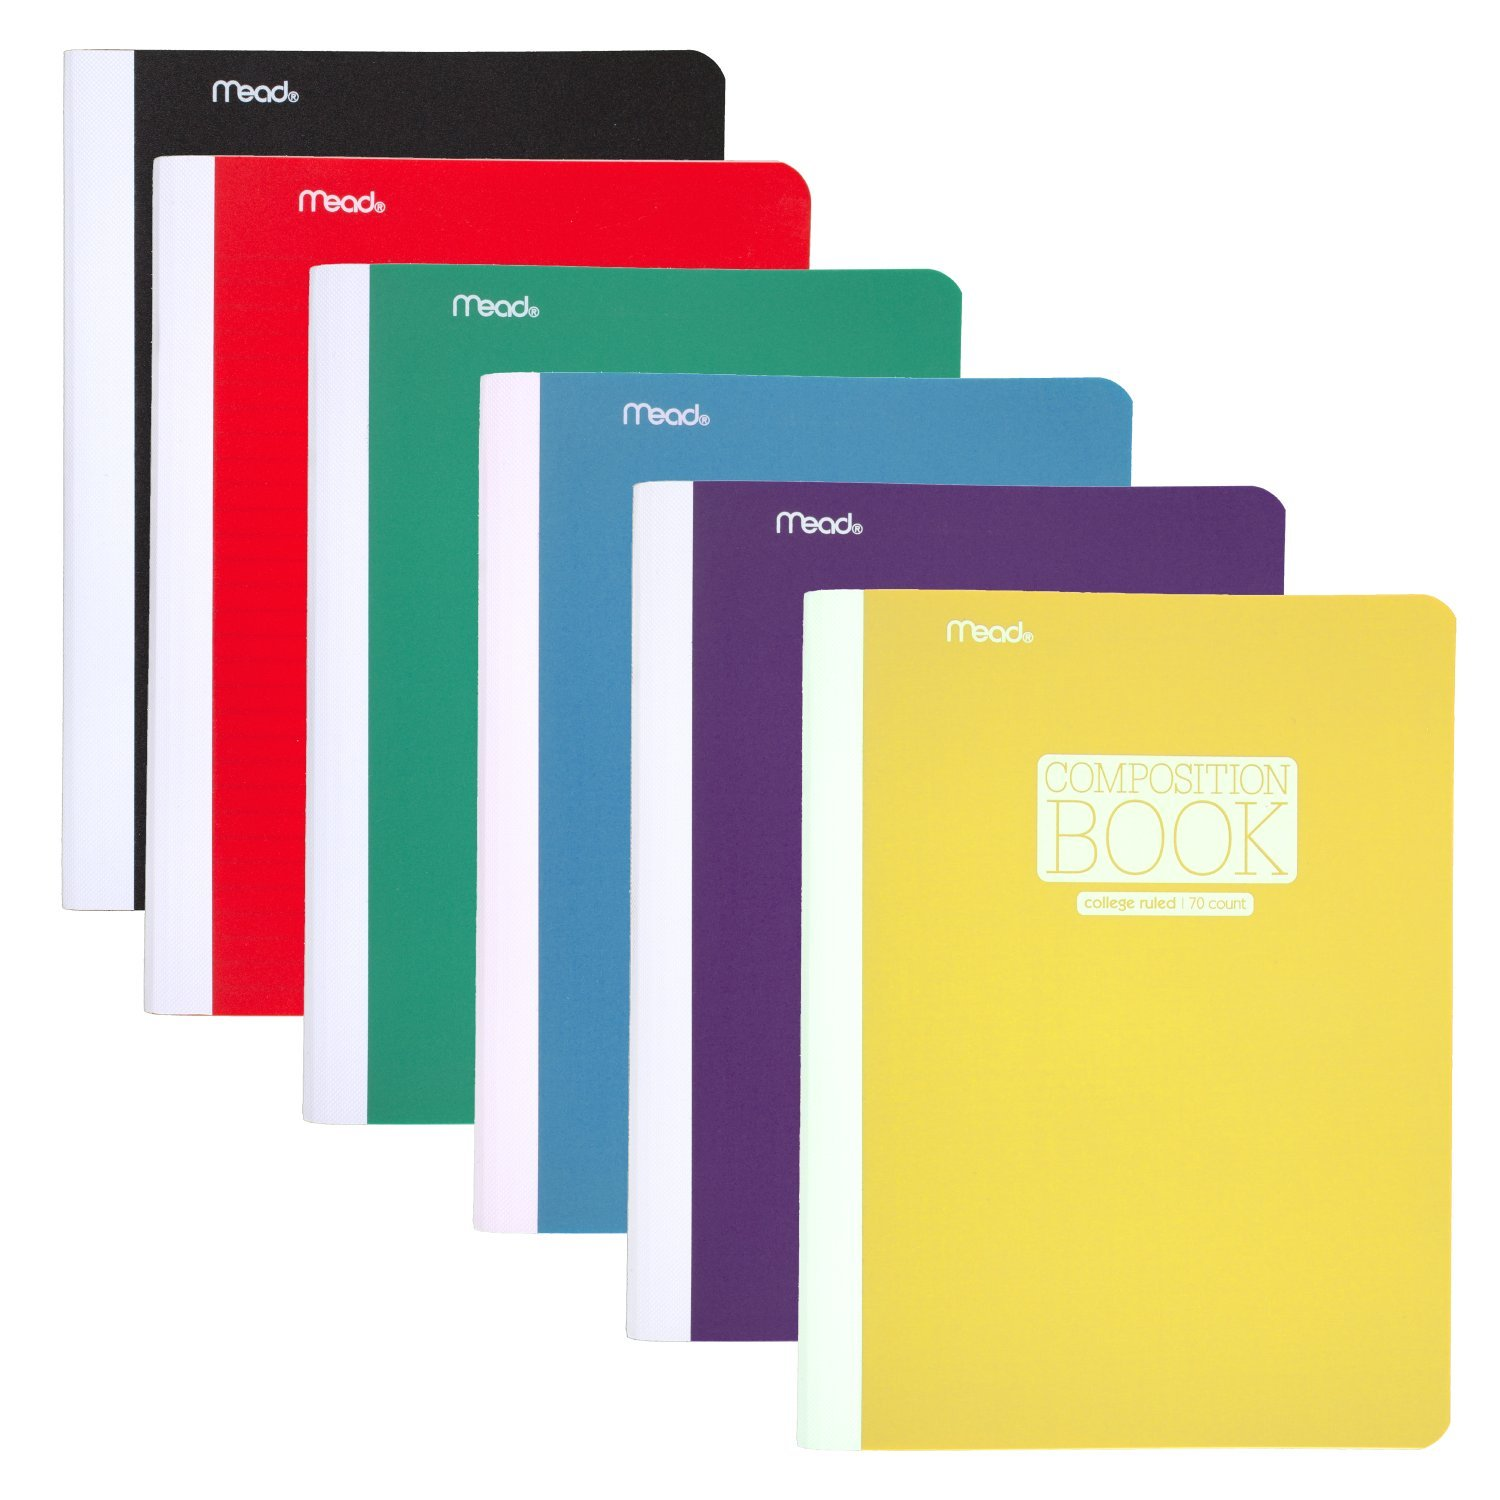 Mead Composition Books/Notebooks, College Ruled Paper, 70 Sheets, Plastic, Assorted Colors, 6 Pack (38978)